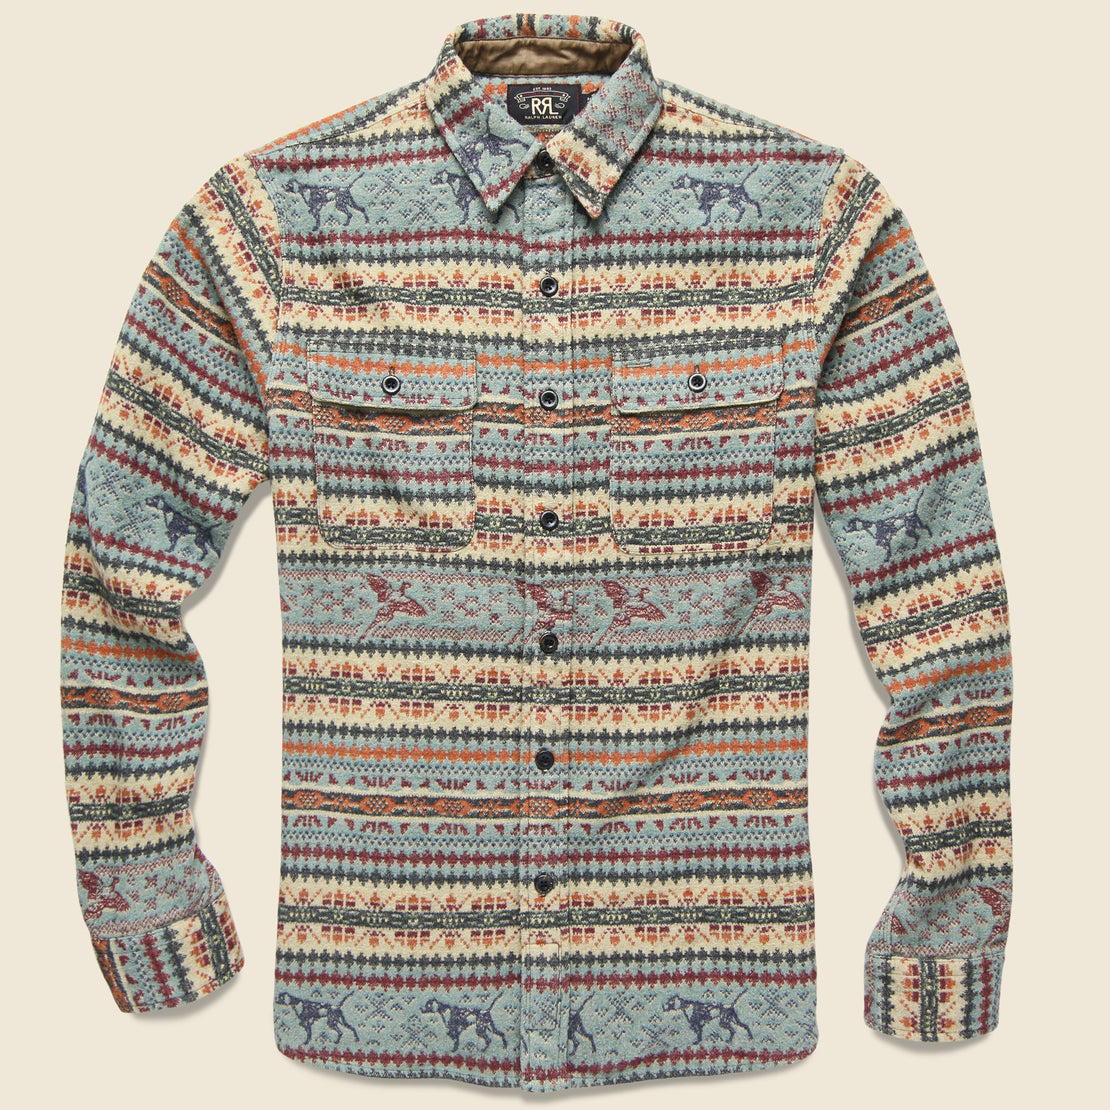 RRL Fair Isle Jacquard Workshirt - Blue